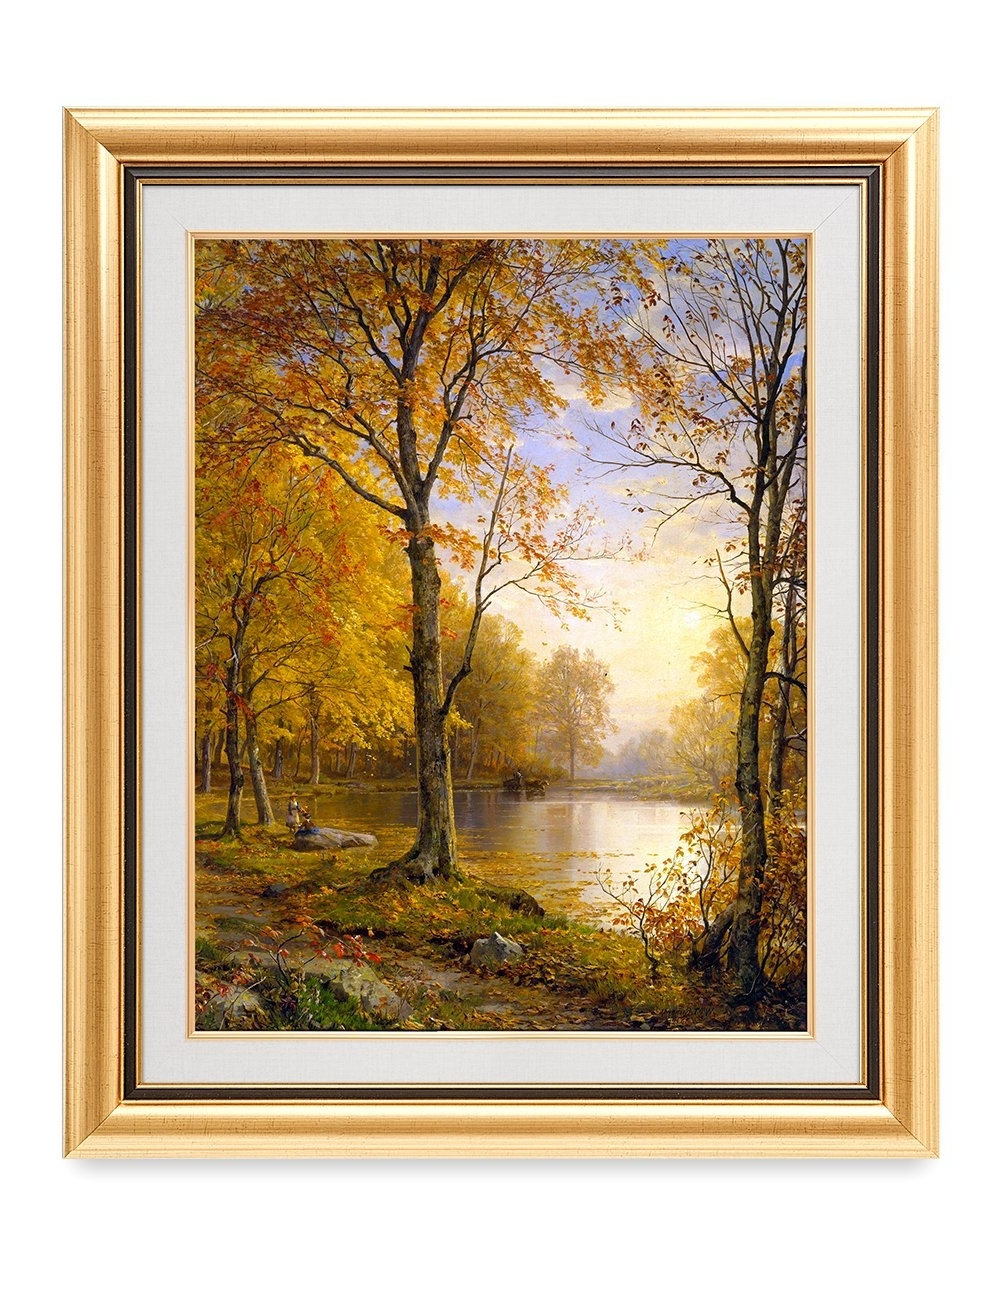 Most Recent Decorarts – 'indian Summer', William Trost Richards; Classic Art Intended For Framed Classic Art Prints (View 4 of 15)